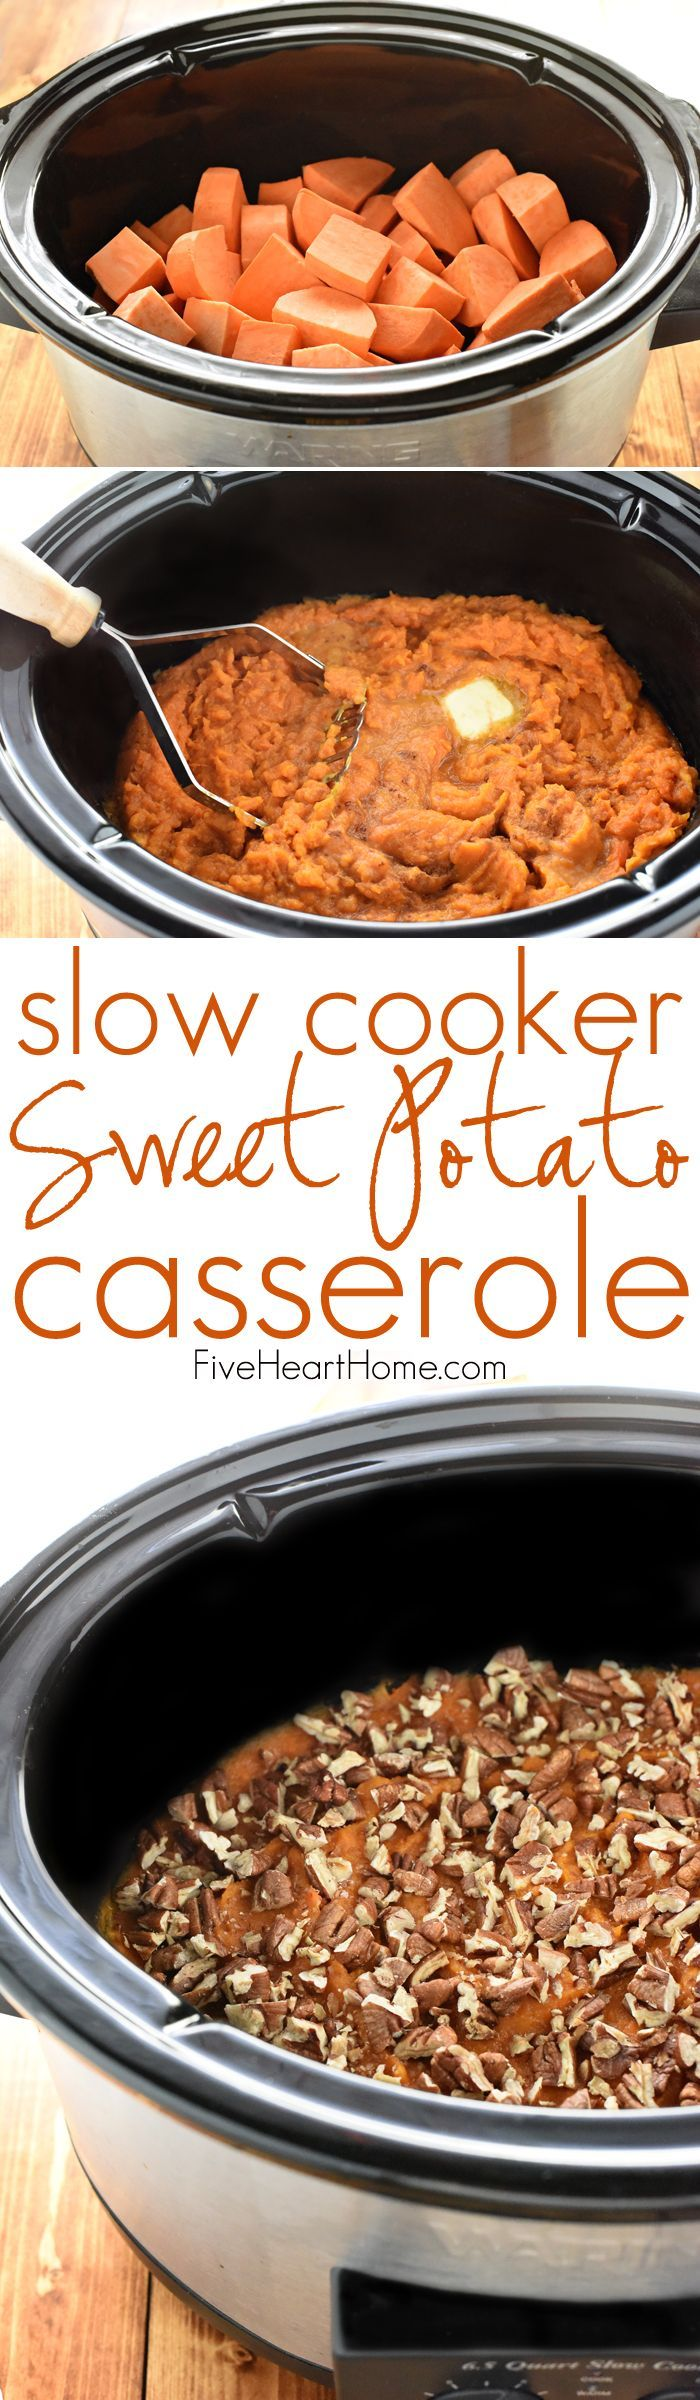 Slow Cooker Sweet Potato Casserole ~ lightly sweetened with maple syrup and topped with toasted pecans, this effortless crock pot recipe is a delicious Thanksgiving side dish that frees up the oven! | http://FiveHeartHome.com